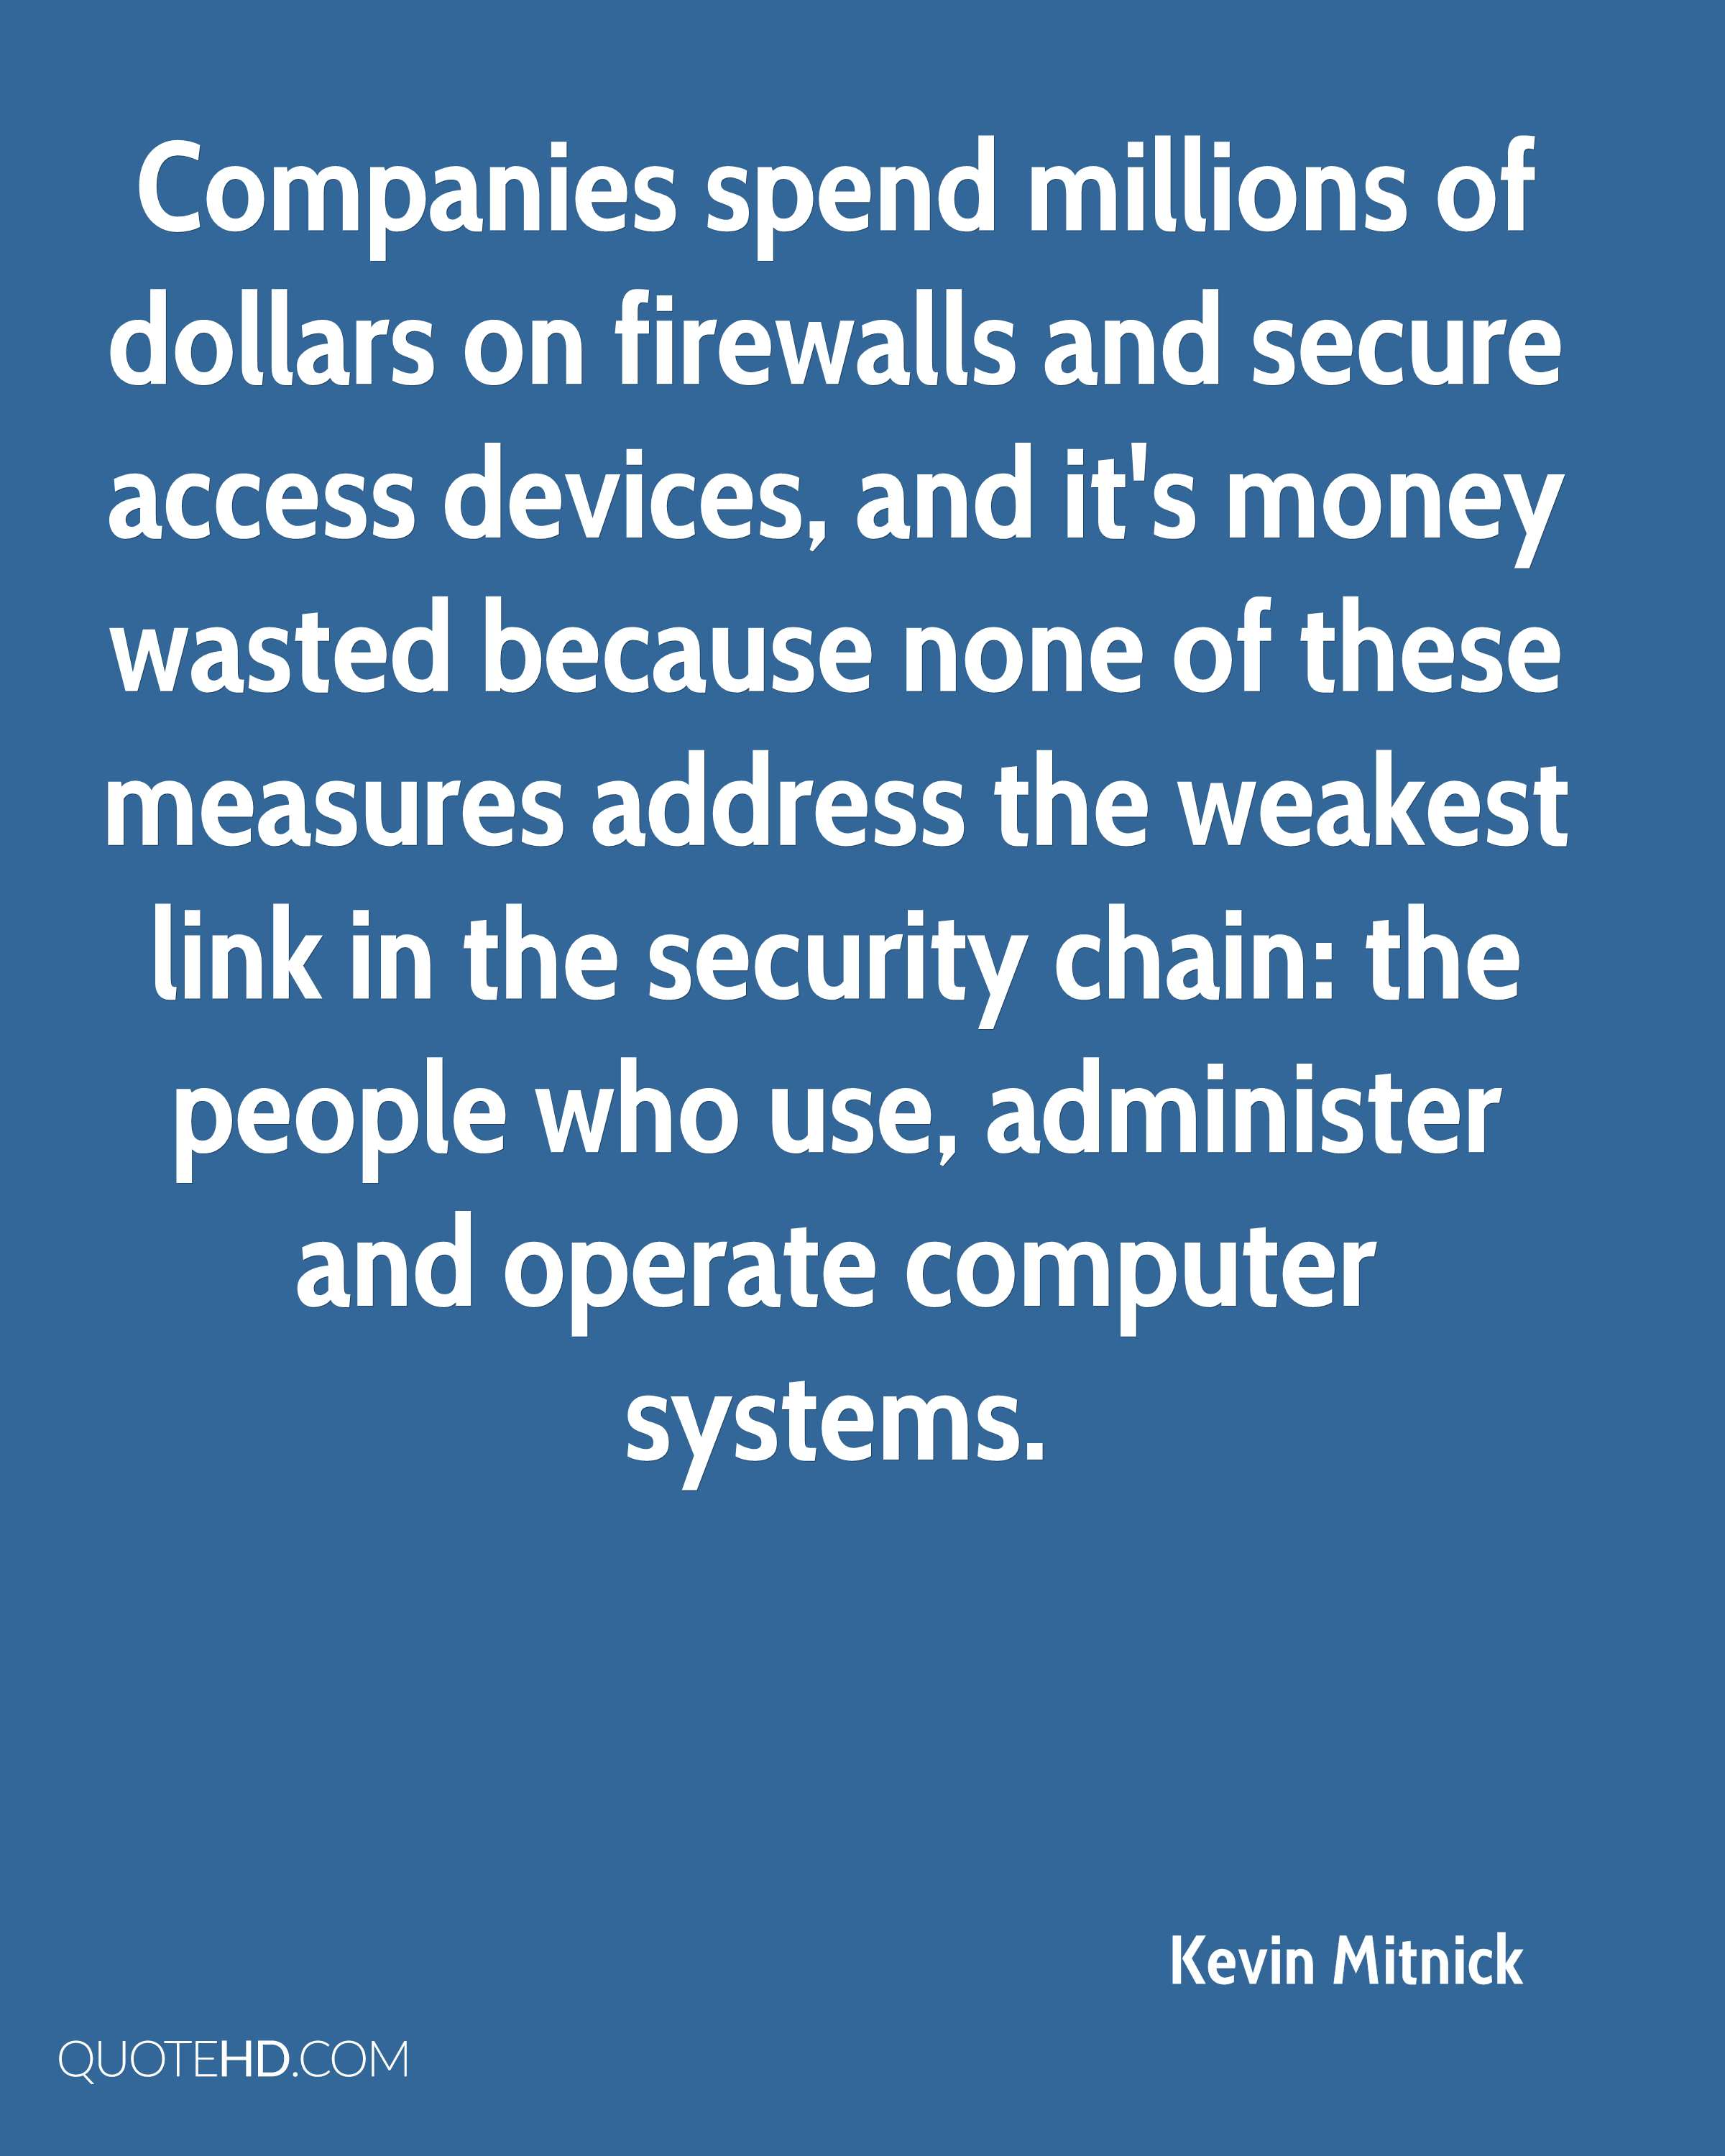 Quotes About Security Kevin Mitnick Quotes  Quotehd